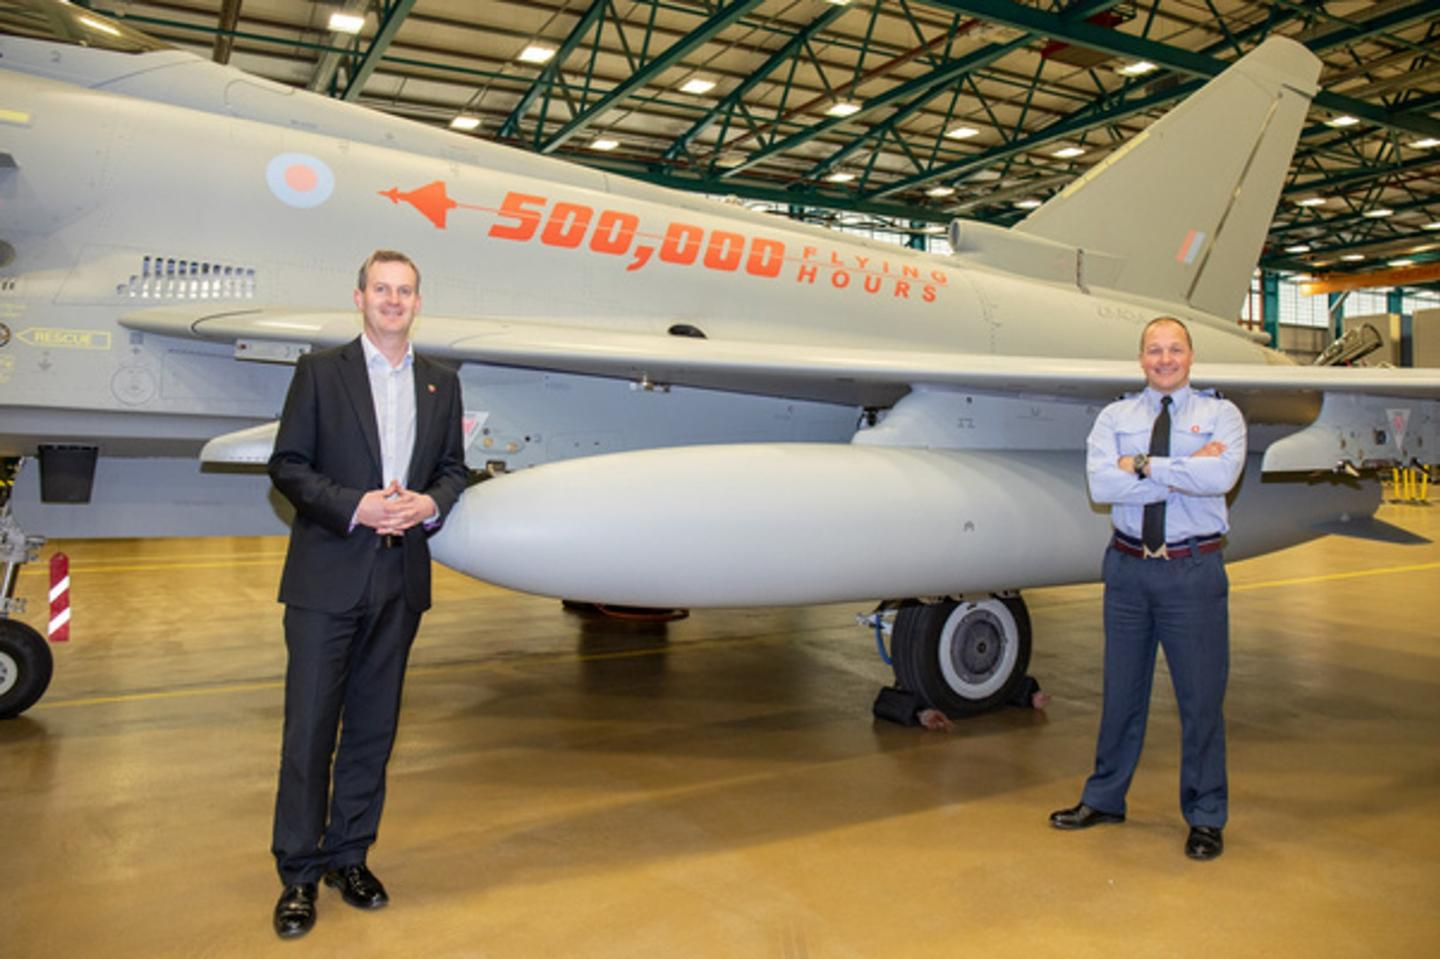 Royal Air Force Typhoon Force Commander, Air Commodore Mark Chappell and Typhoon Support Delivery Director Richard Hamilton, in the Typhoon Maintenance Facility RAF Coningsby